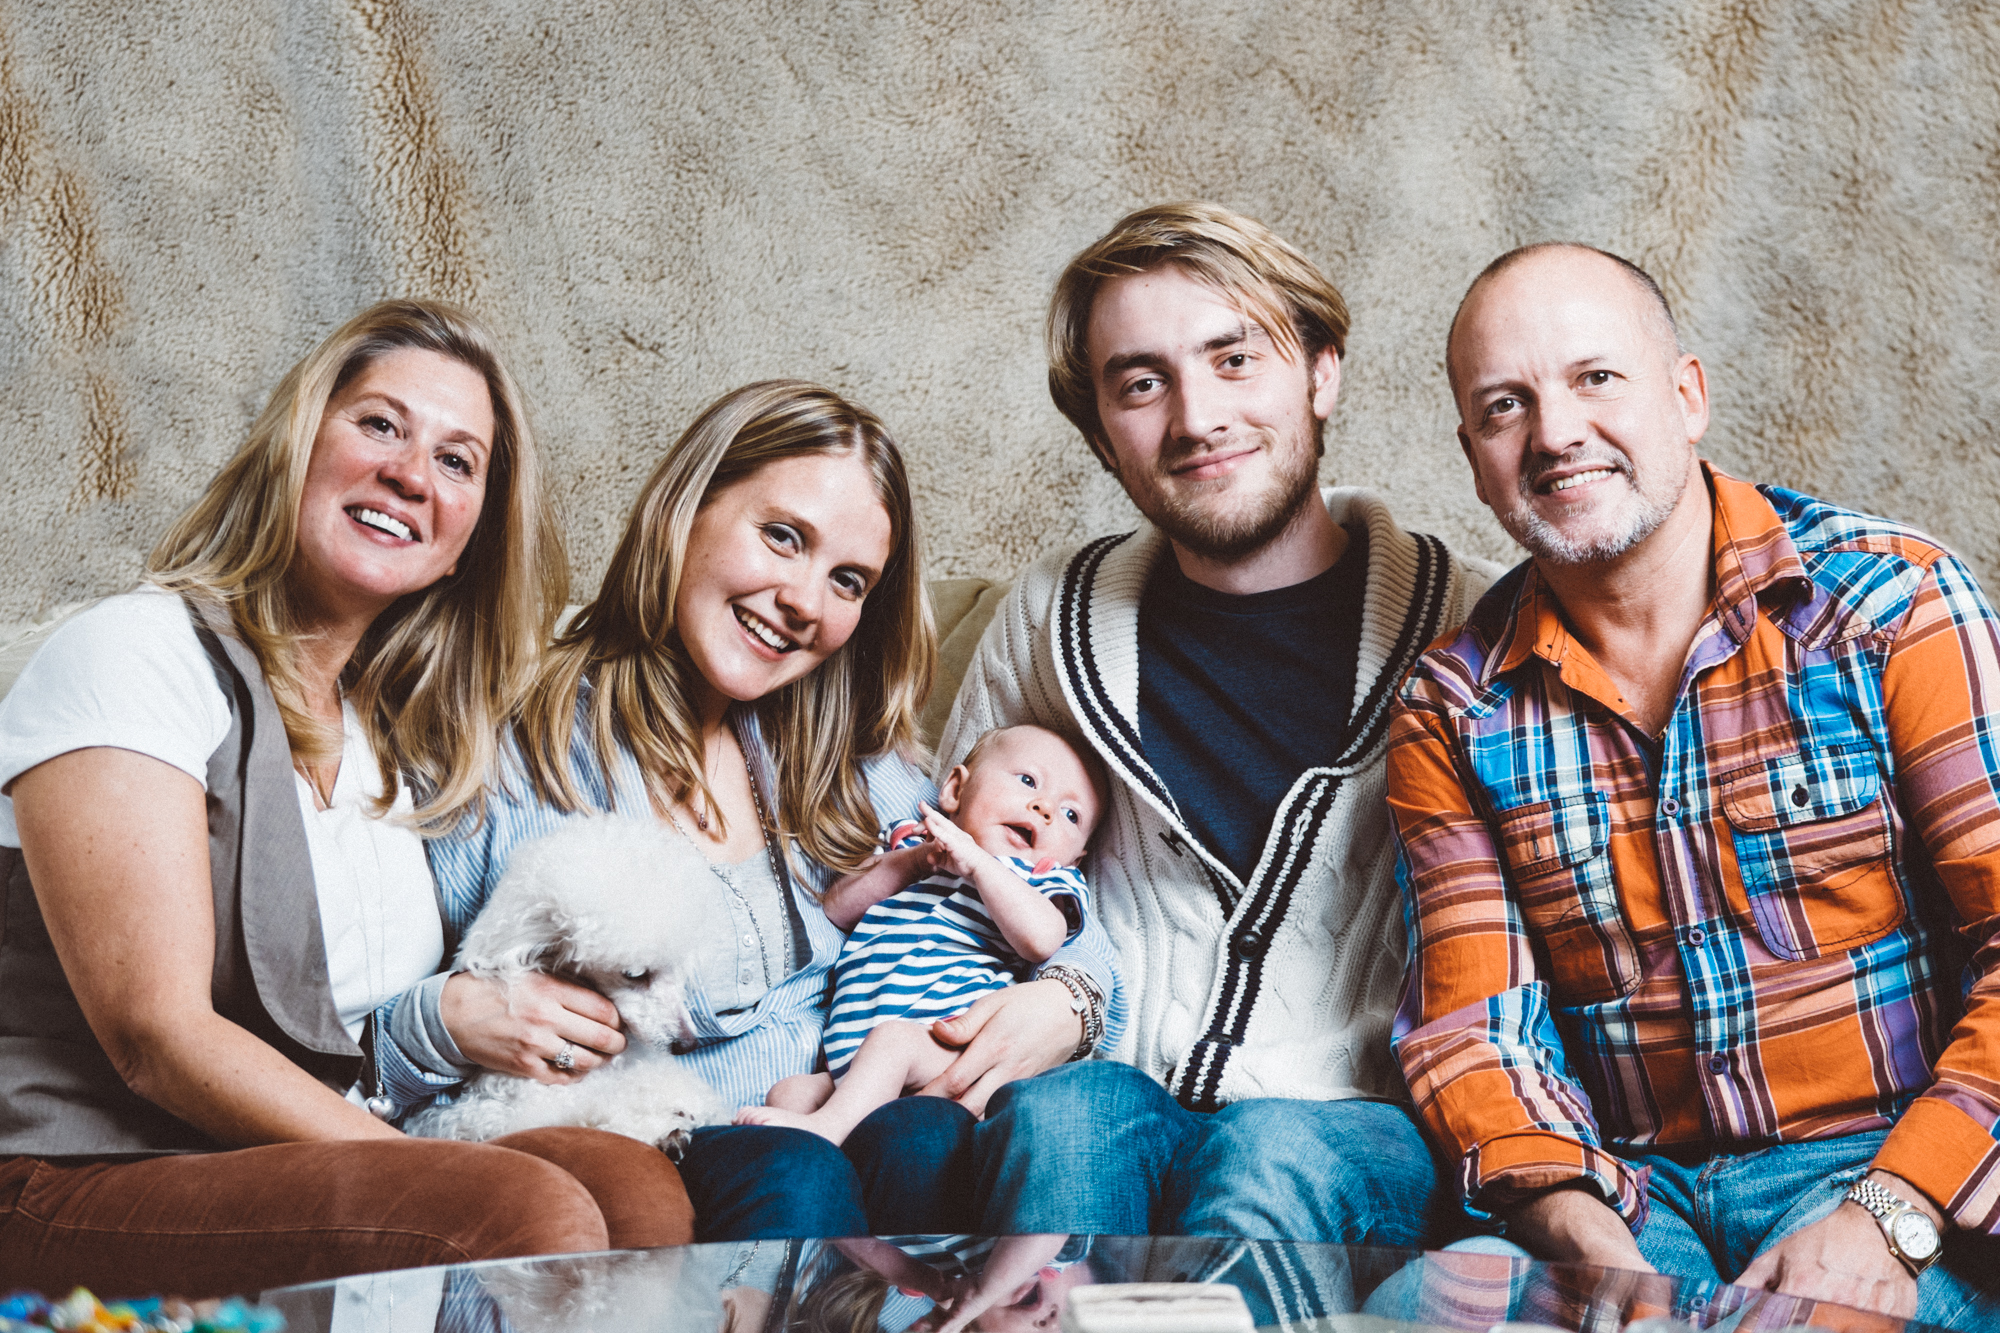 artistic lifestyle portraits, family portraits, newborn photography, artistic family portraits